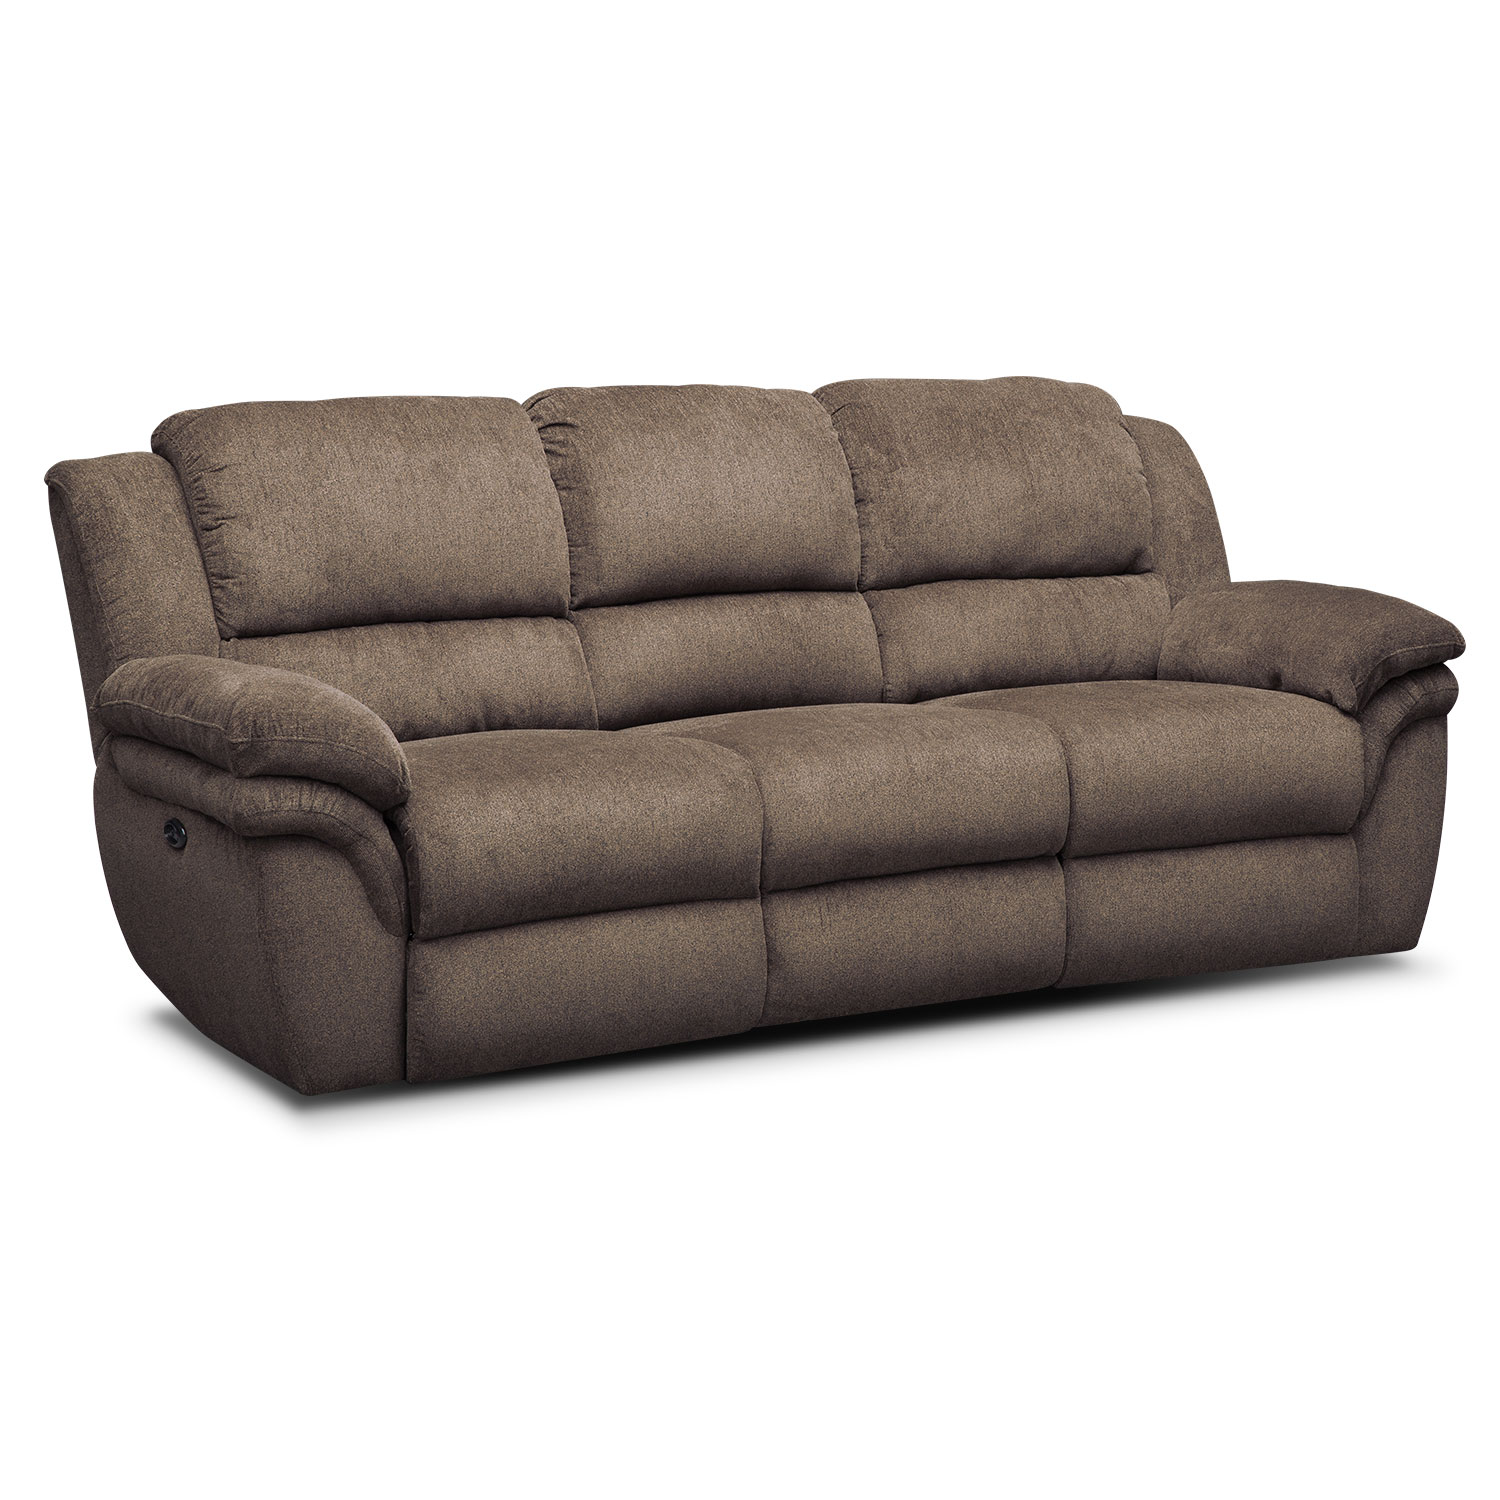 Aldo power reclining sofa loveseat and recliner set mocha value city furniture Power loveseat recliner